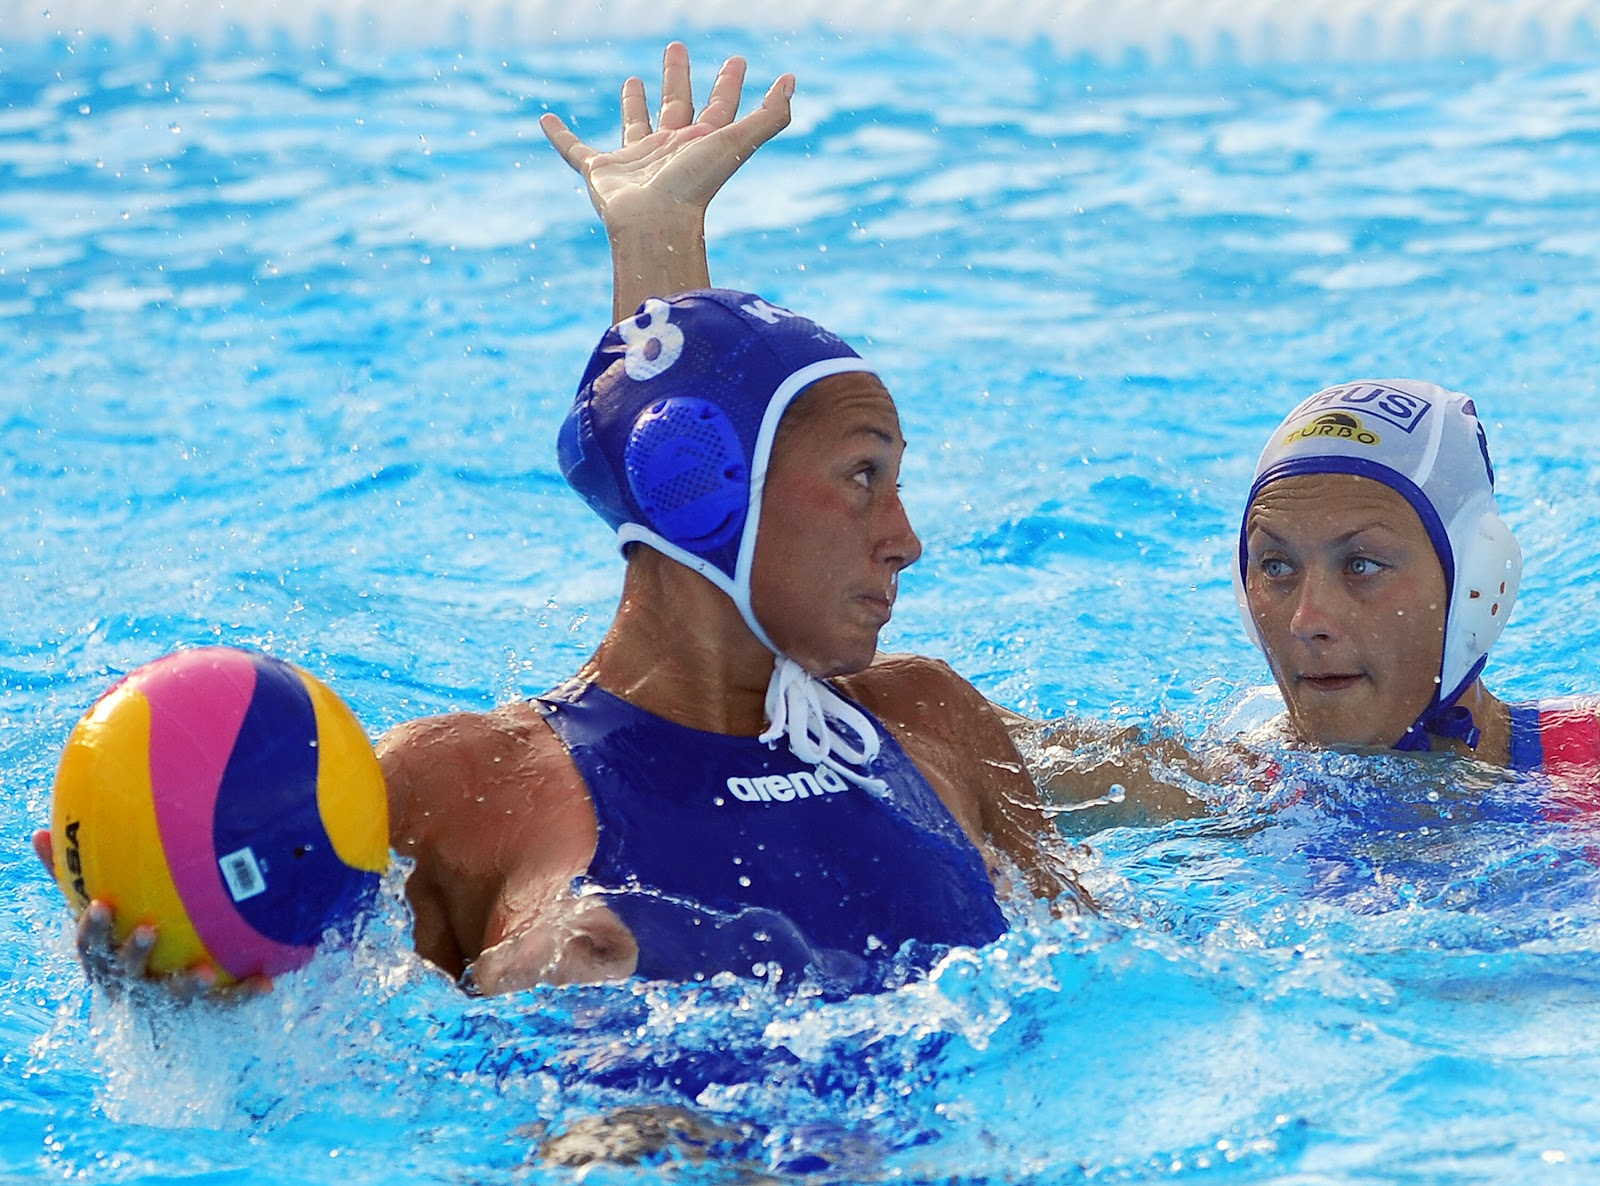 Ladies Water Polo Breast Slip Compilation 100 Photographs Of Nipple Sliding And